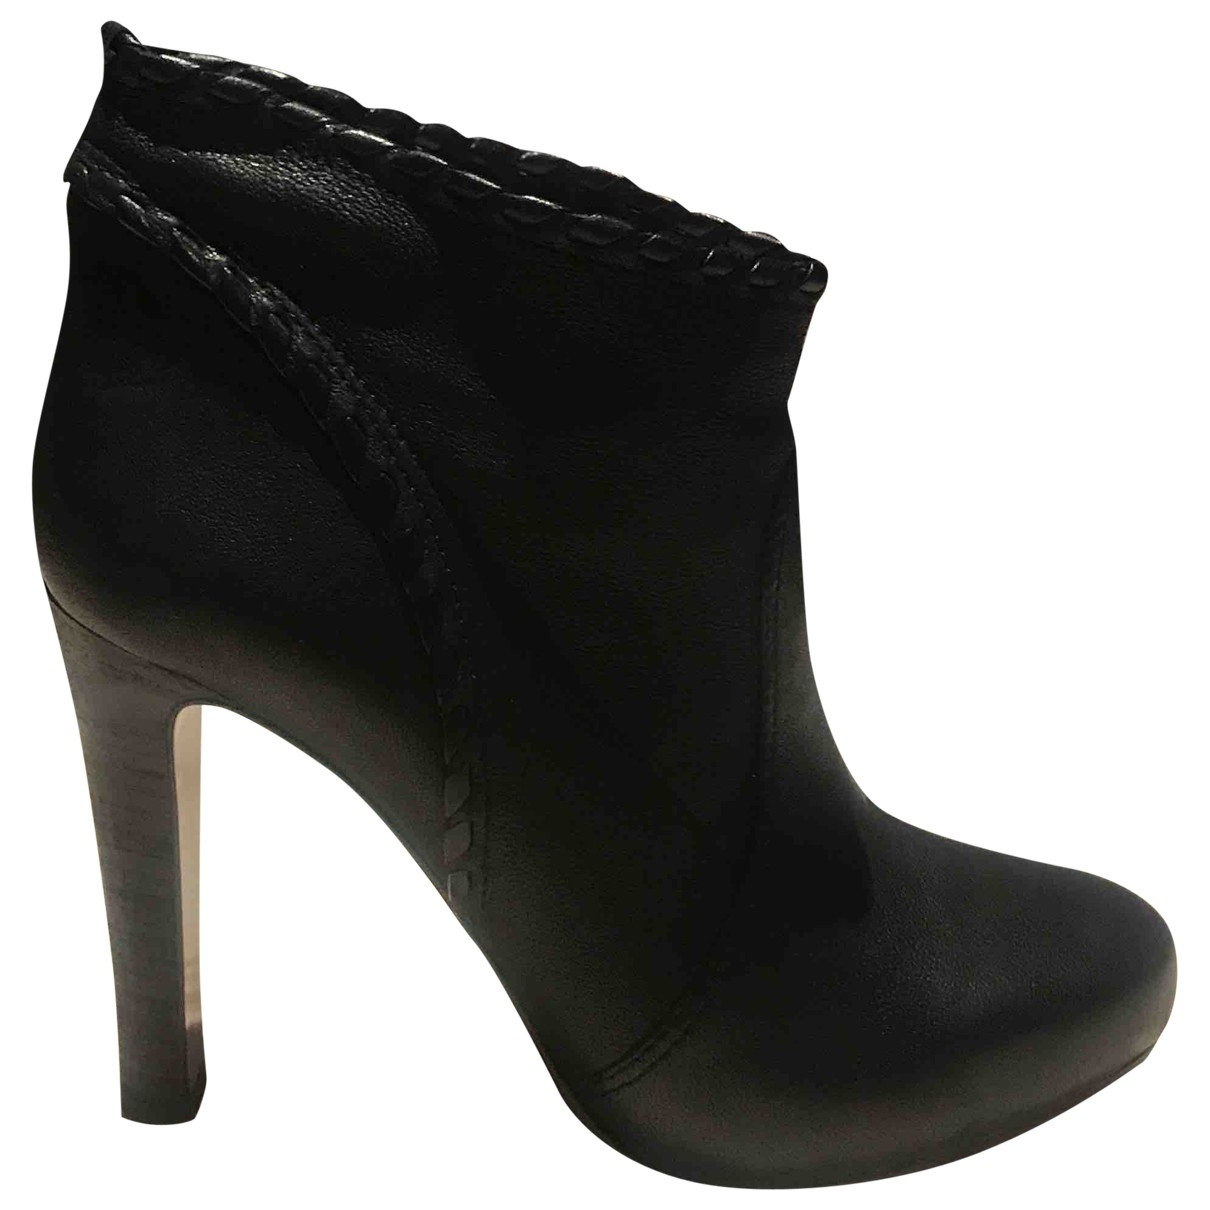 Hugo Boss \N Black Leather Ankle boots for Women 37 EU